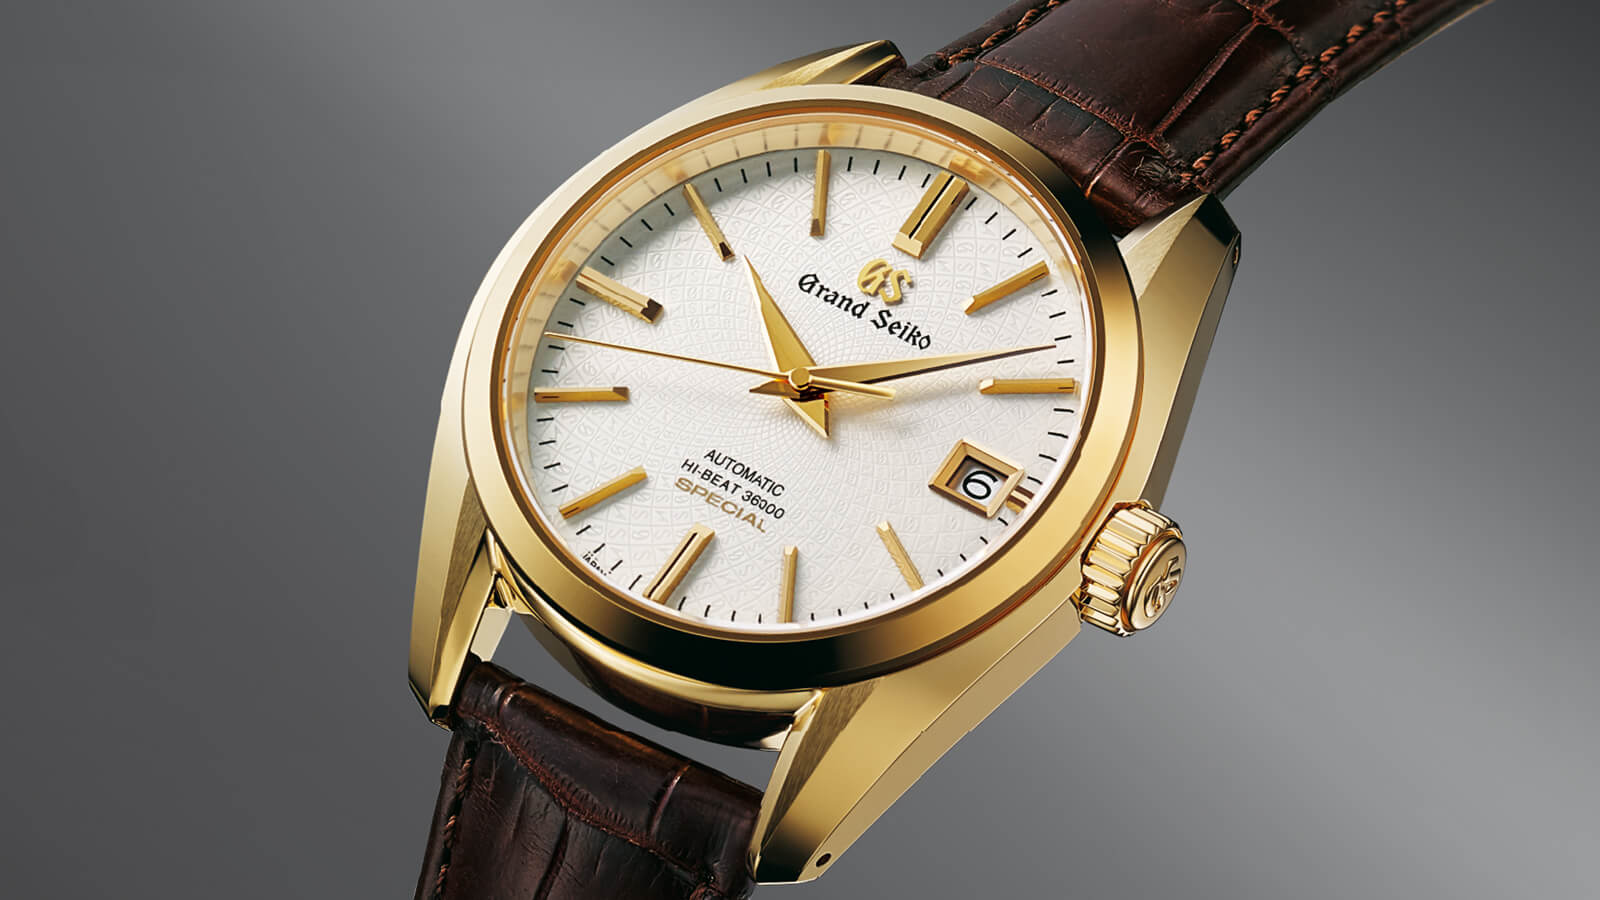 Grand Seiko Hi-Beat 36000 - limited edition watch featuring high frequency movement (5Hz) and zaratsu polishing